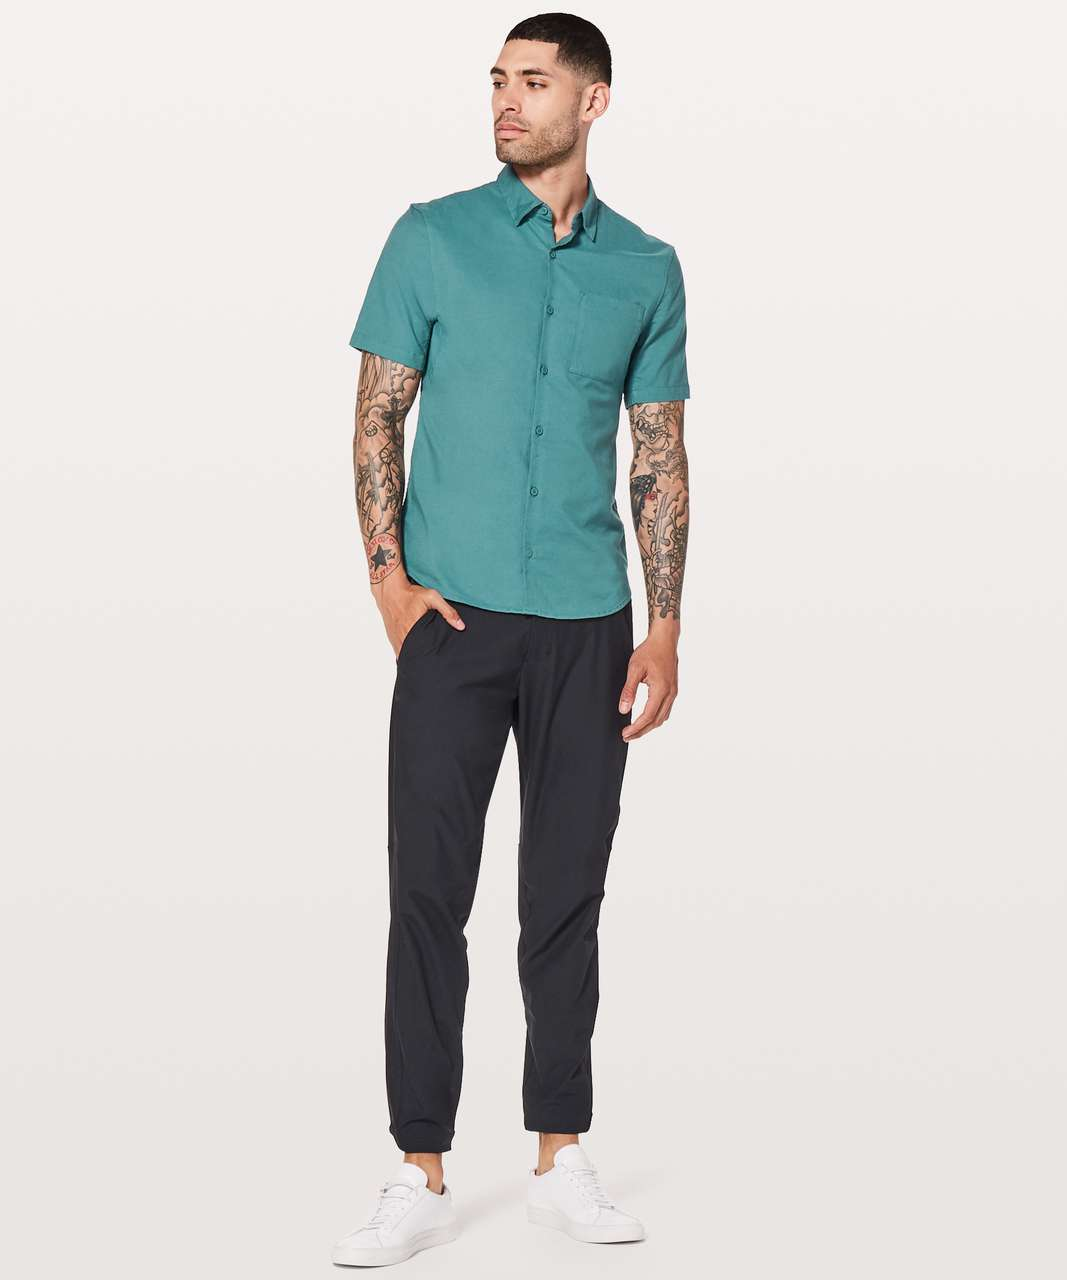 Lululemon All Town Short Sleeve Buttondown - Mystic Green / Deep Cove